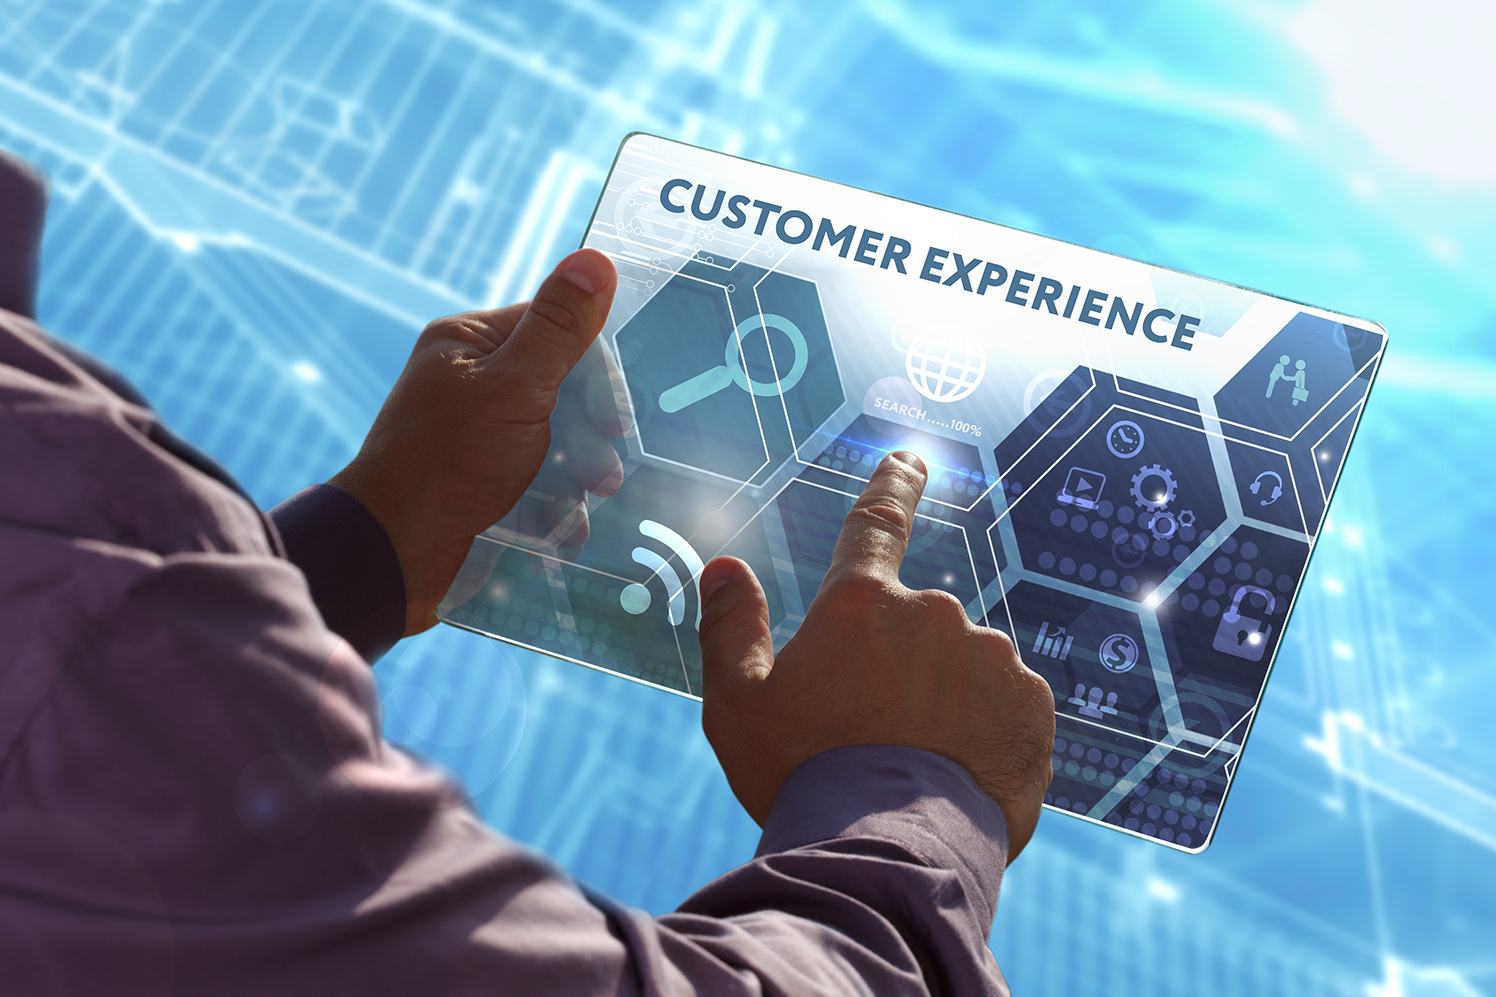 The customer experience is enhanced when investing in fraud technologies.